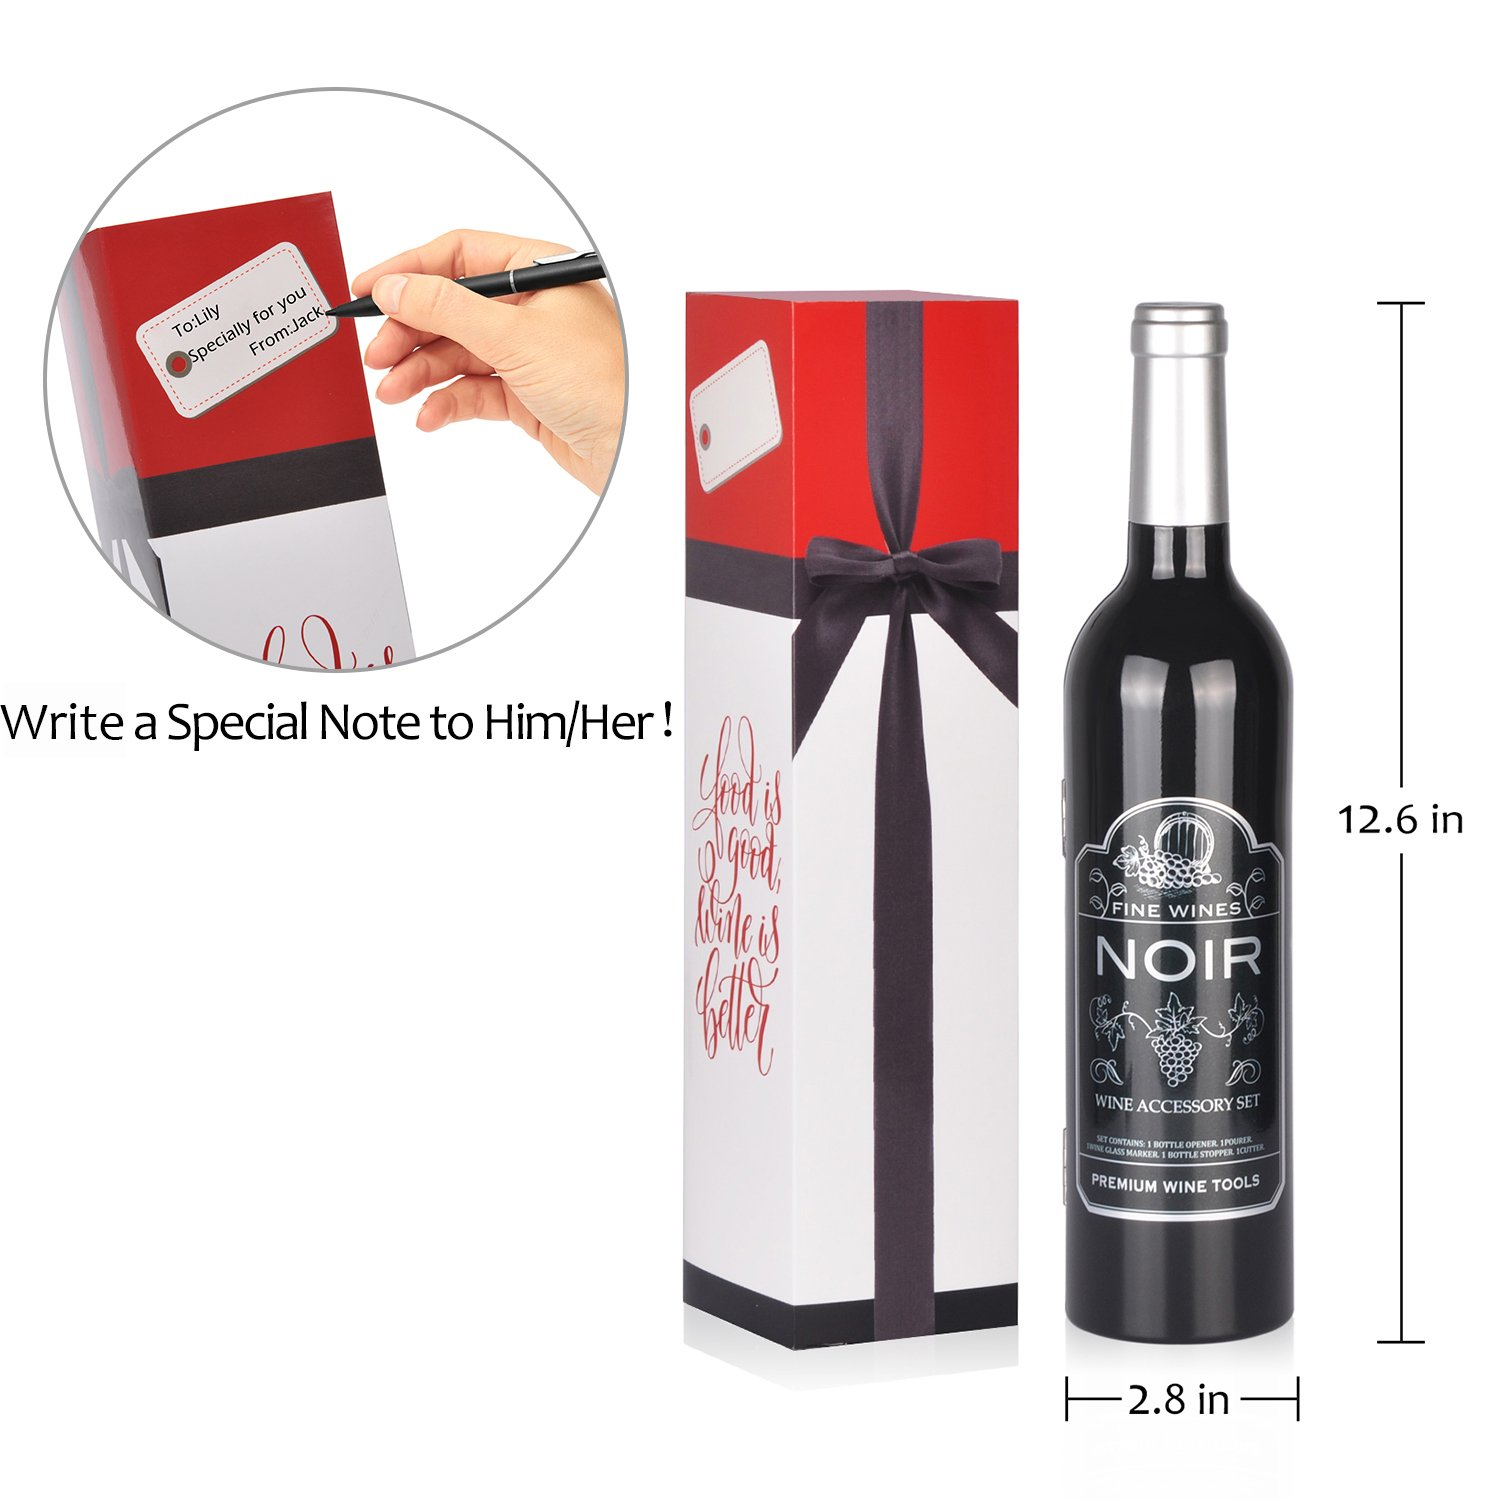 Wine Accessory Gift Set - Deluxe Wine Bottle Corkscrew Opener, Stopper, Aerator Pourer, Foil Cutter, Glass Paint Marker w/Reusable Drink Stickers in Gift Box, Wine Gifts for Wine Lover by Friend of Vines (Image #4)